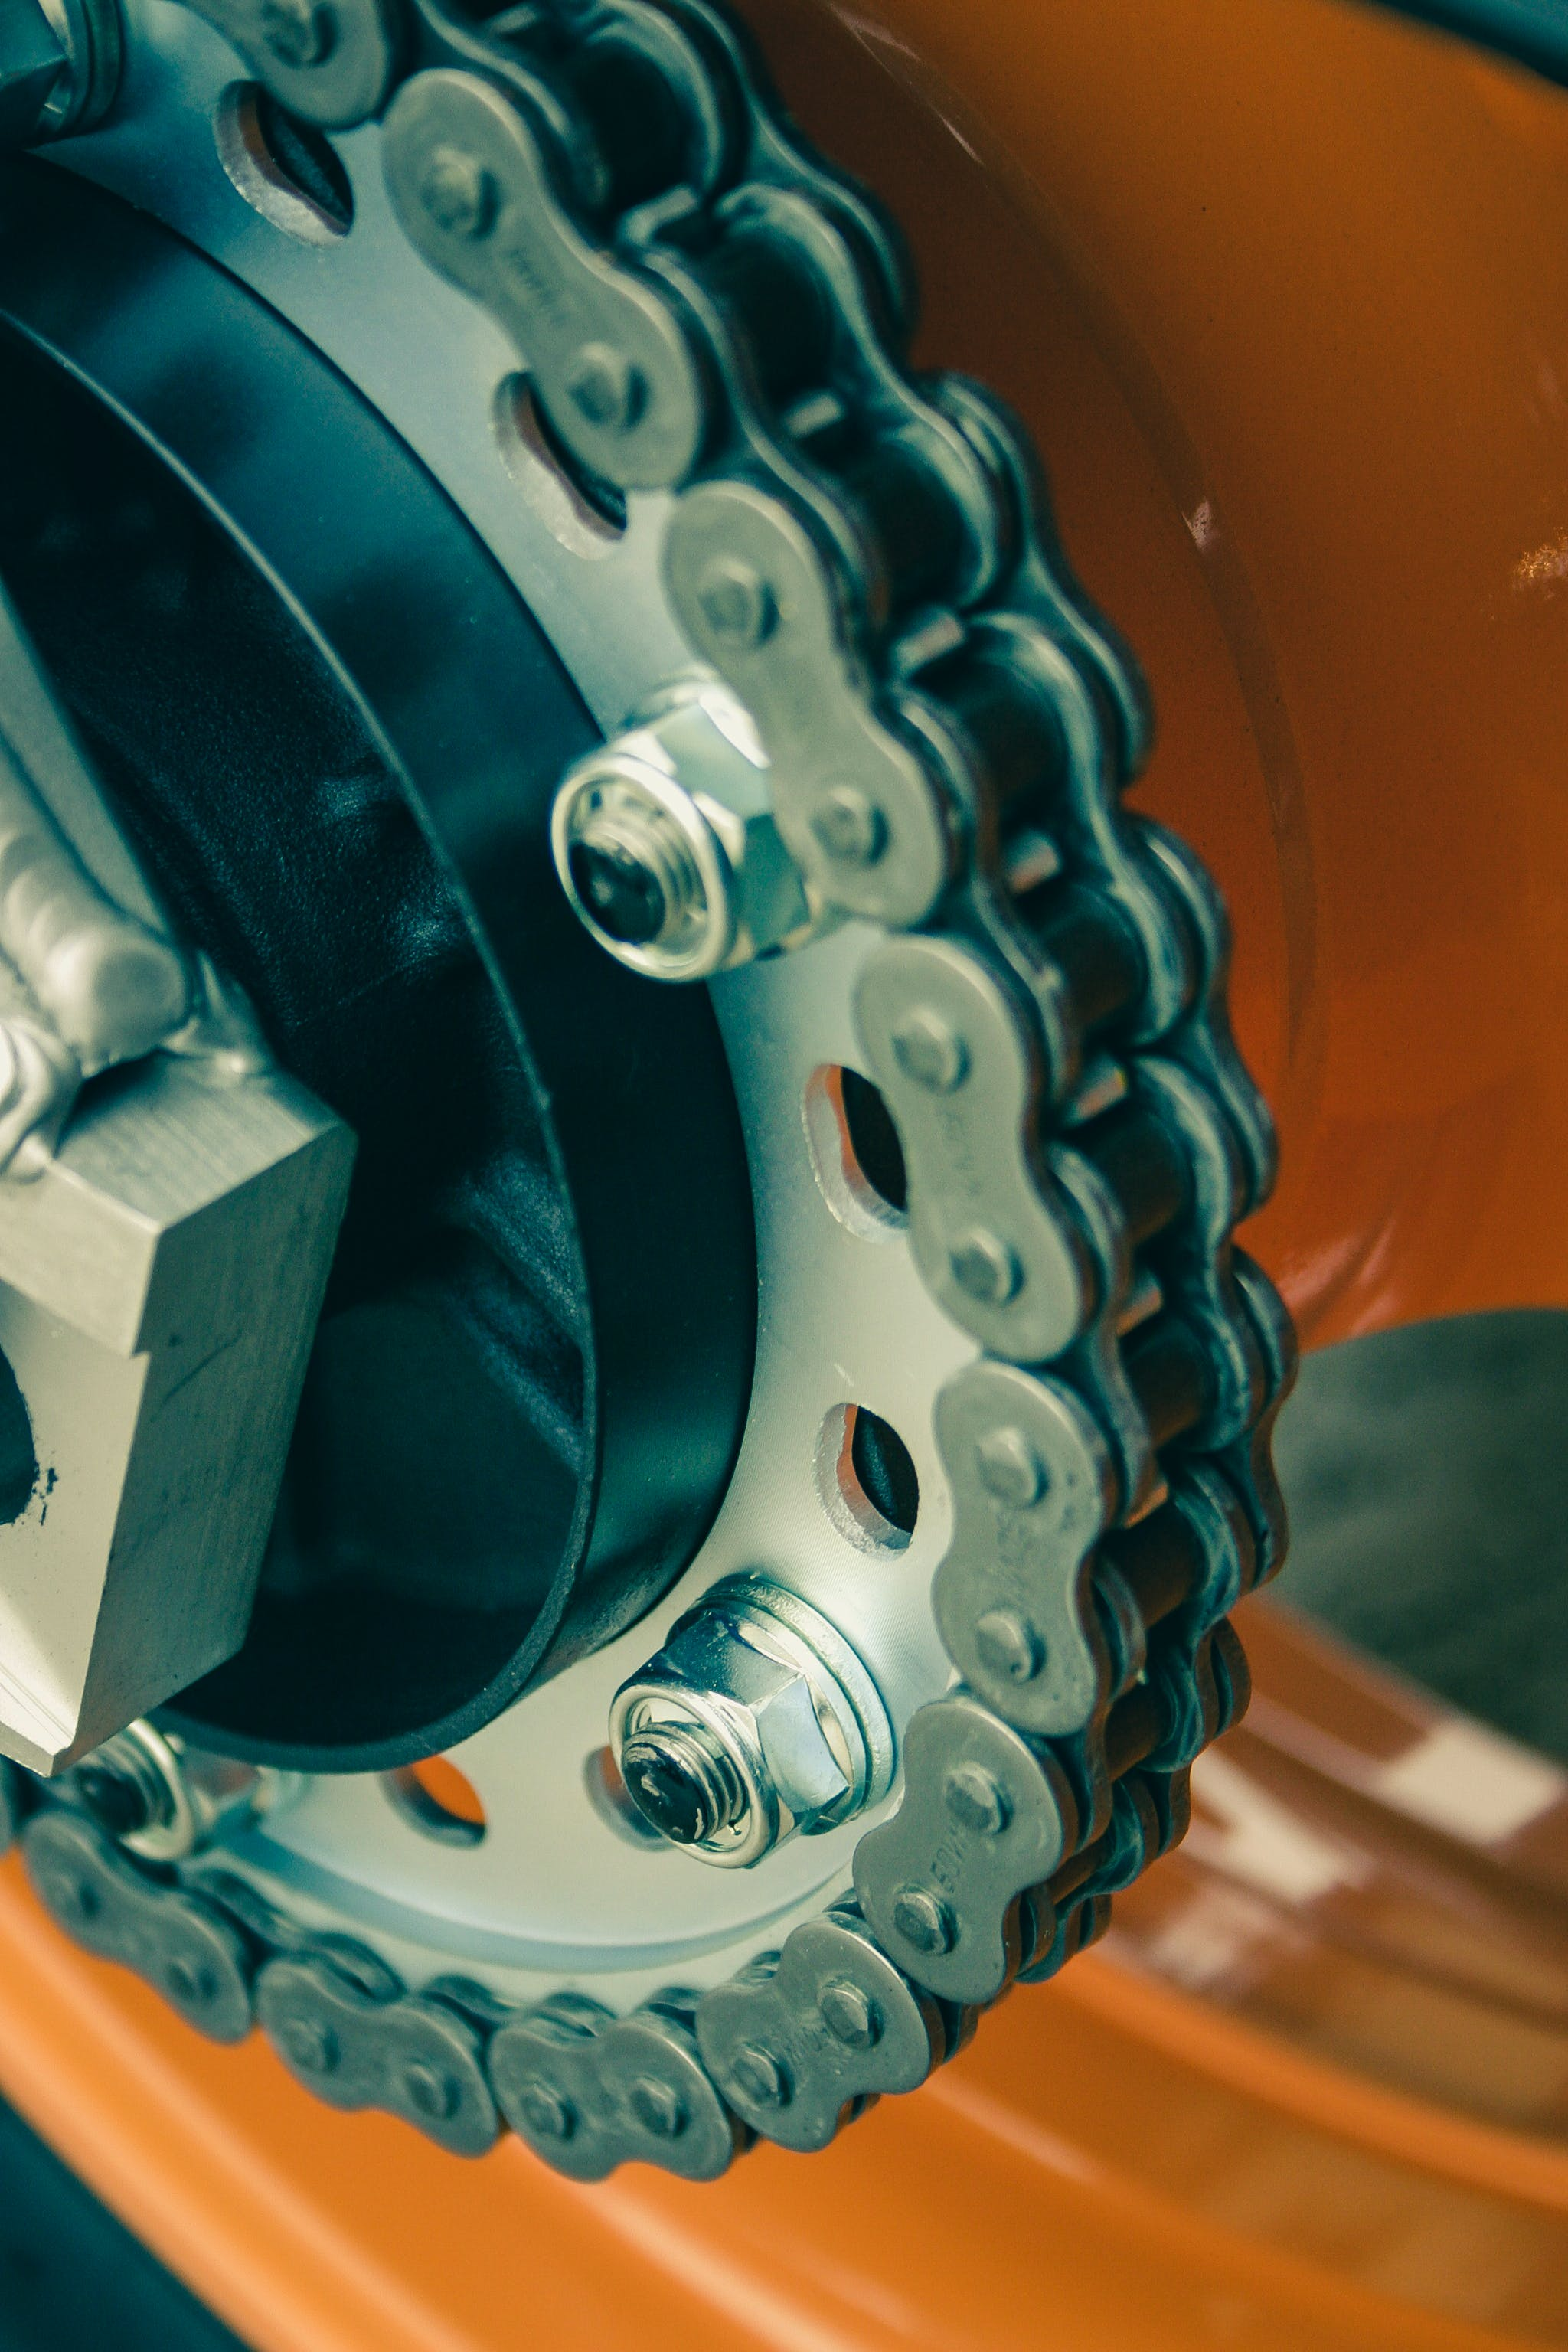 Free stock photo of chain, drive chain, gear, gear wheel